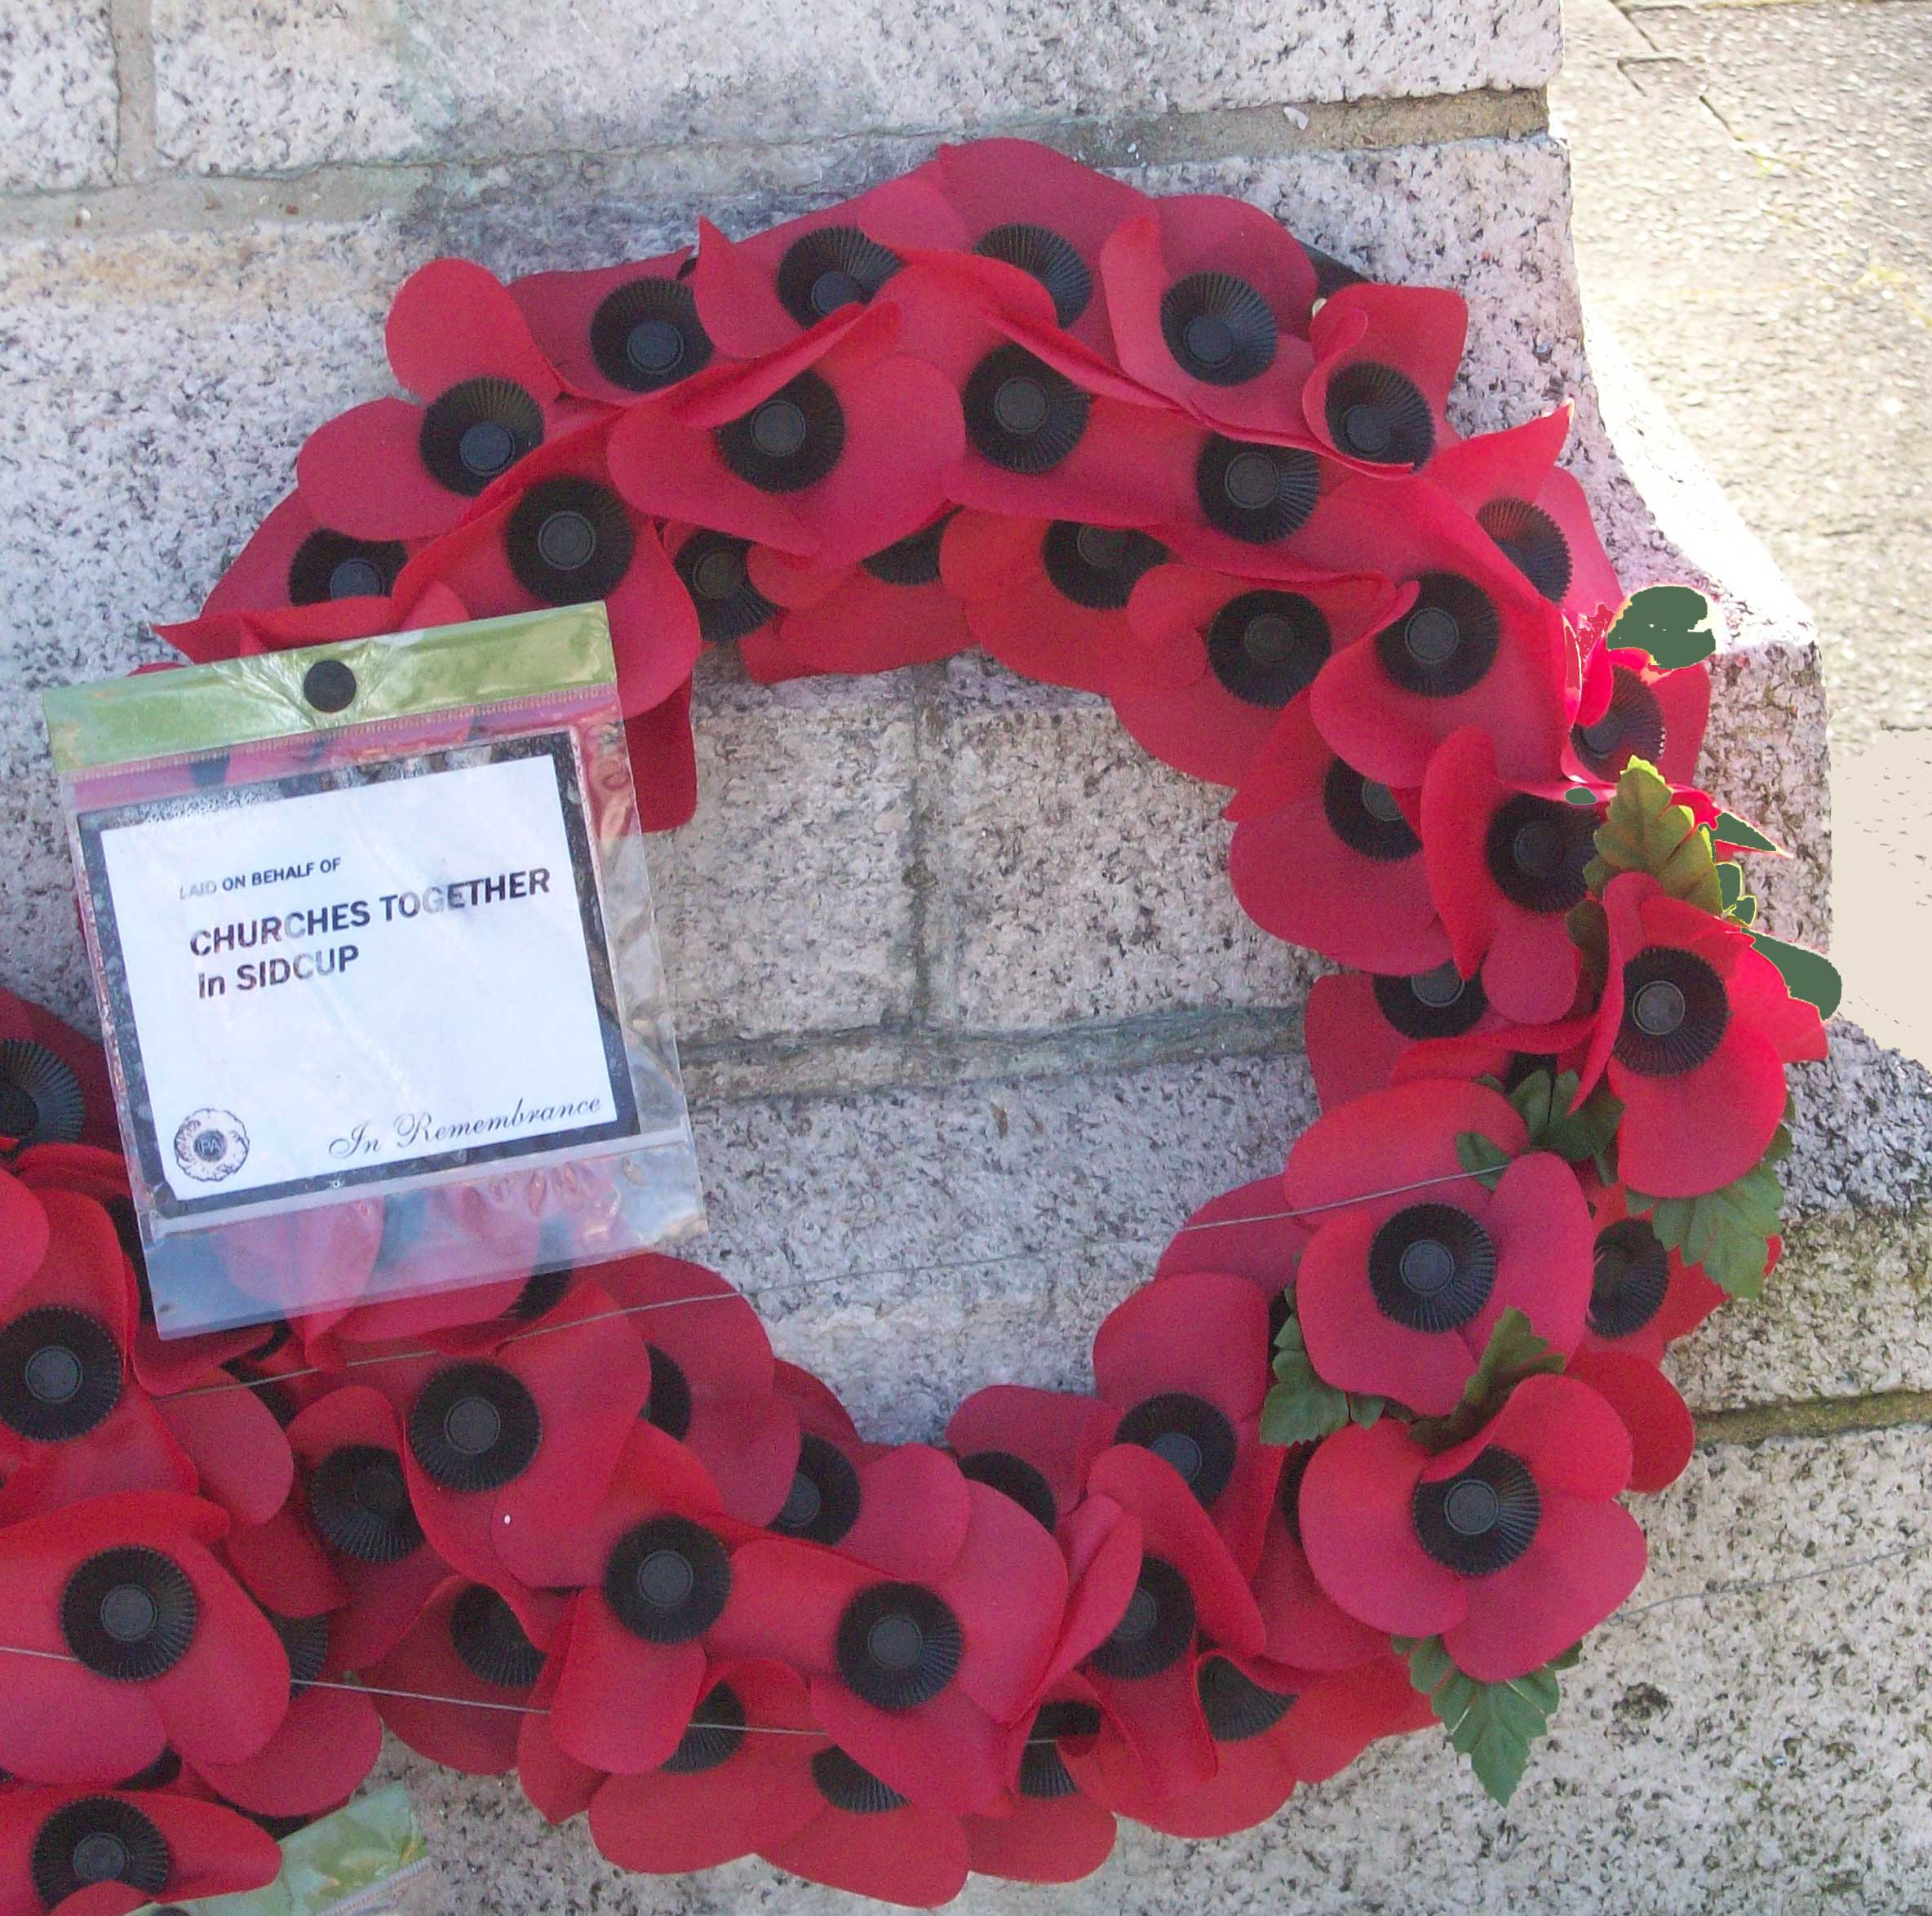 Remembrance Ceremony at The  Green, Sidcup Place on Sunday 9th November